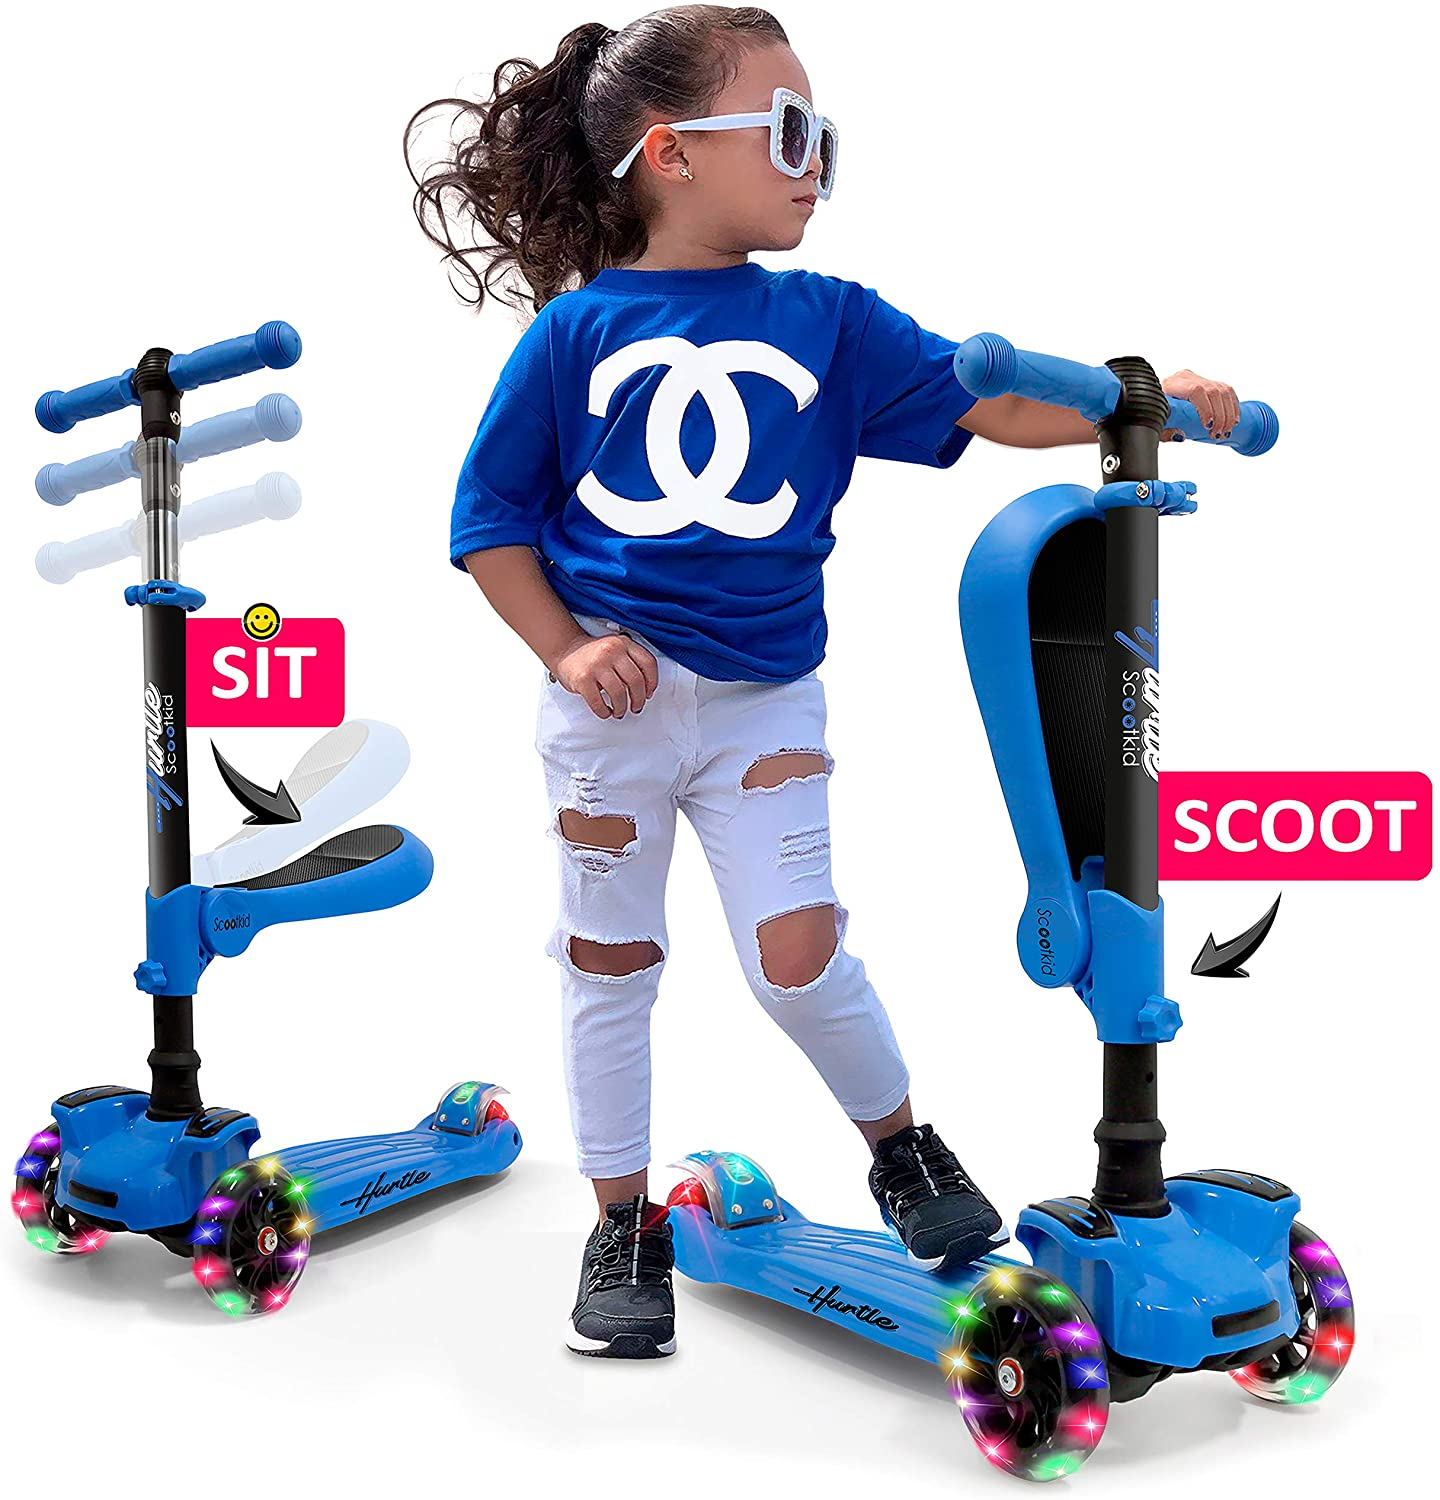 Hurtle 3 Wheeled Scooter for Kids - 2-in-1 Sit/Stand Child Toddlers Toy Kick Scooters w/Flip-Out Seat, Adjustable Height, Wide Deck, Flashing Wheel Lights, for Boys/Girls 1 Year Old HURFS66.5